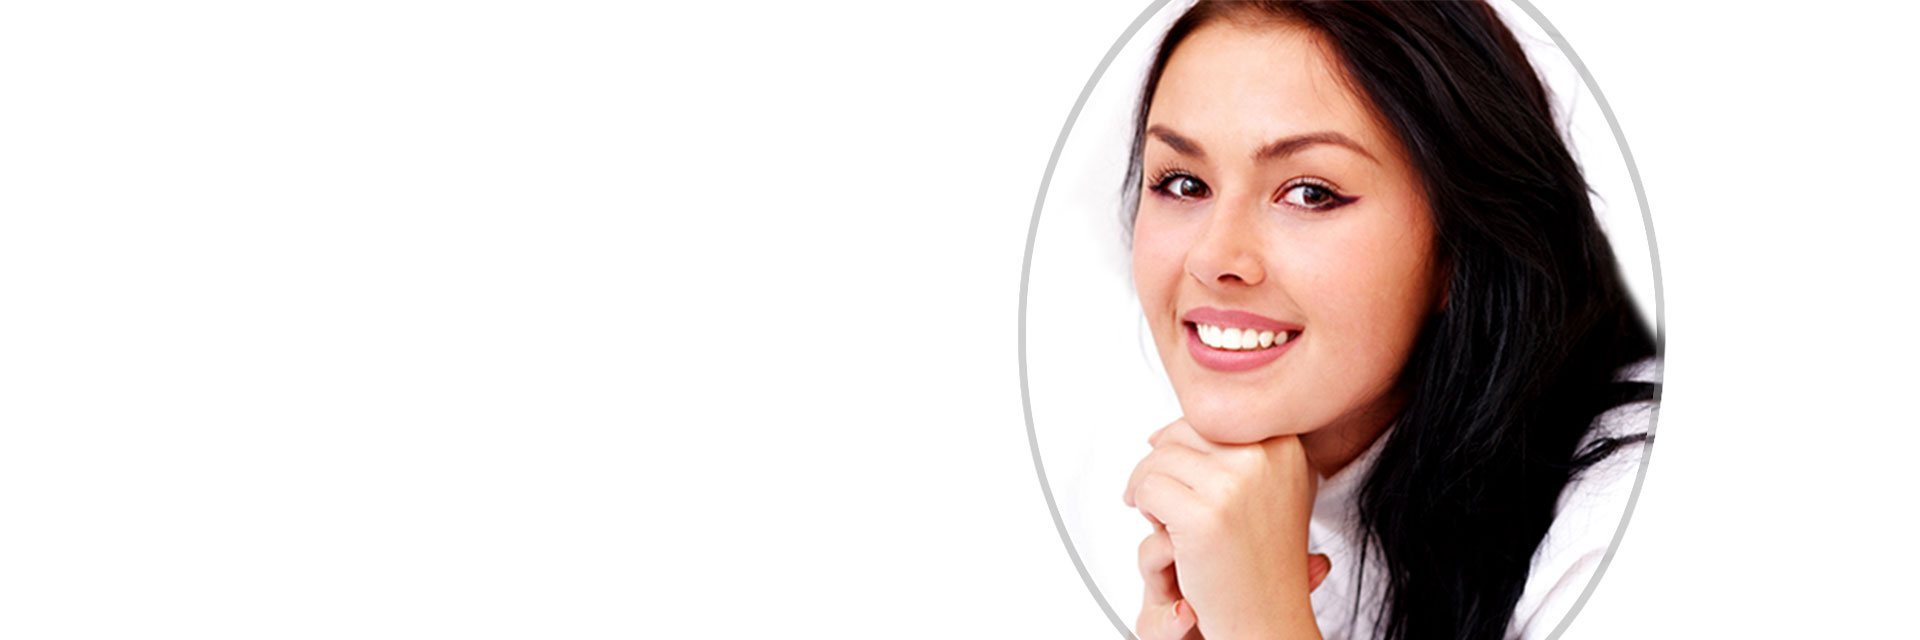 banner happy girl smiling discover dental